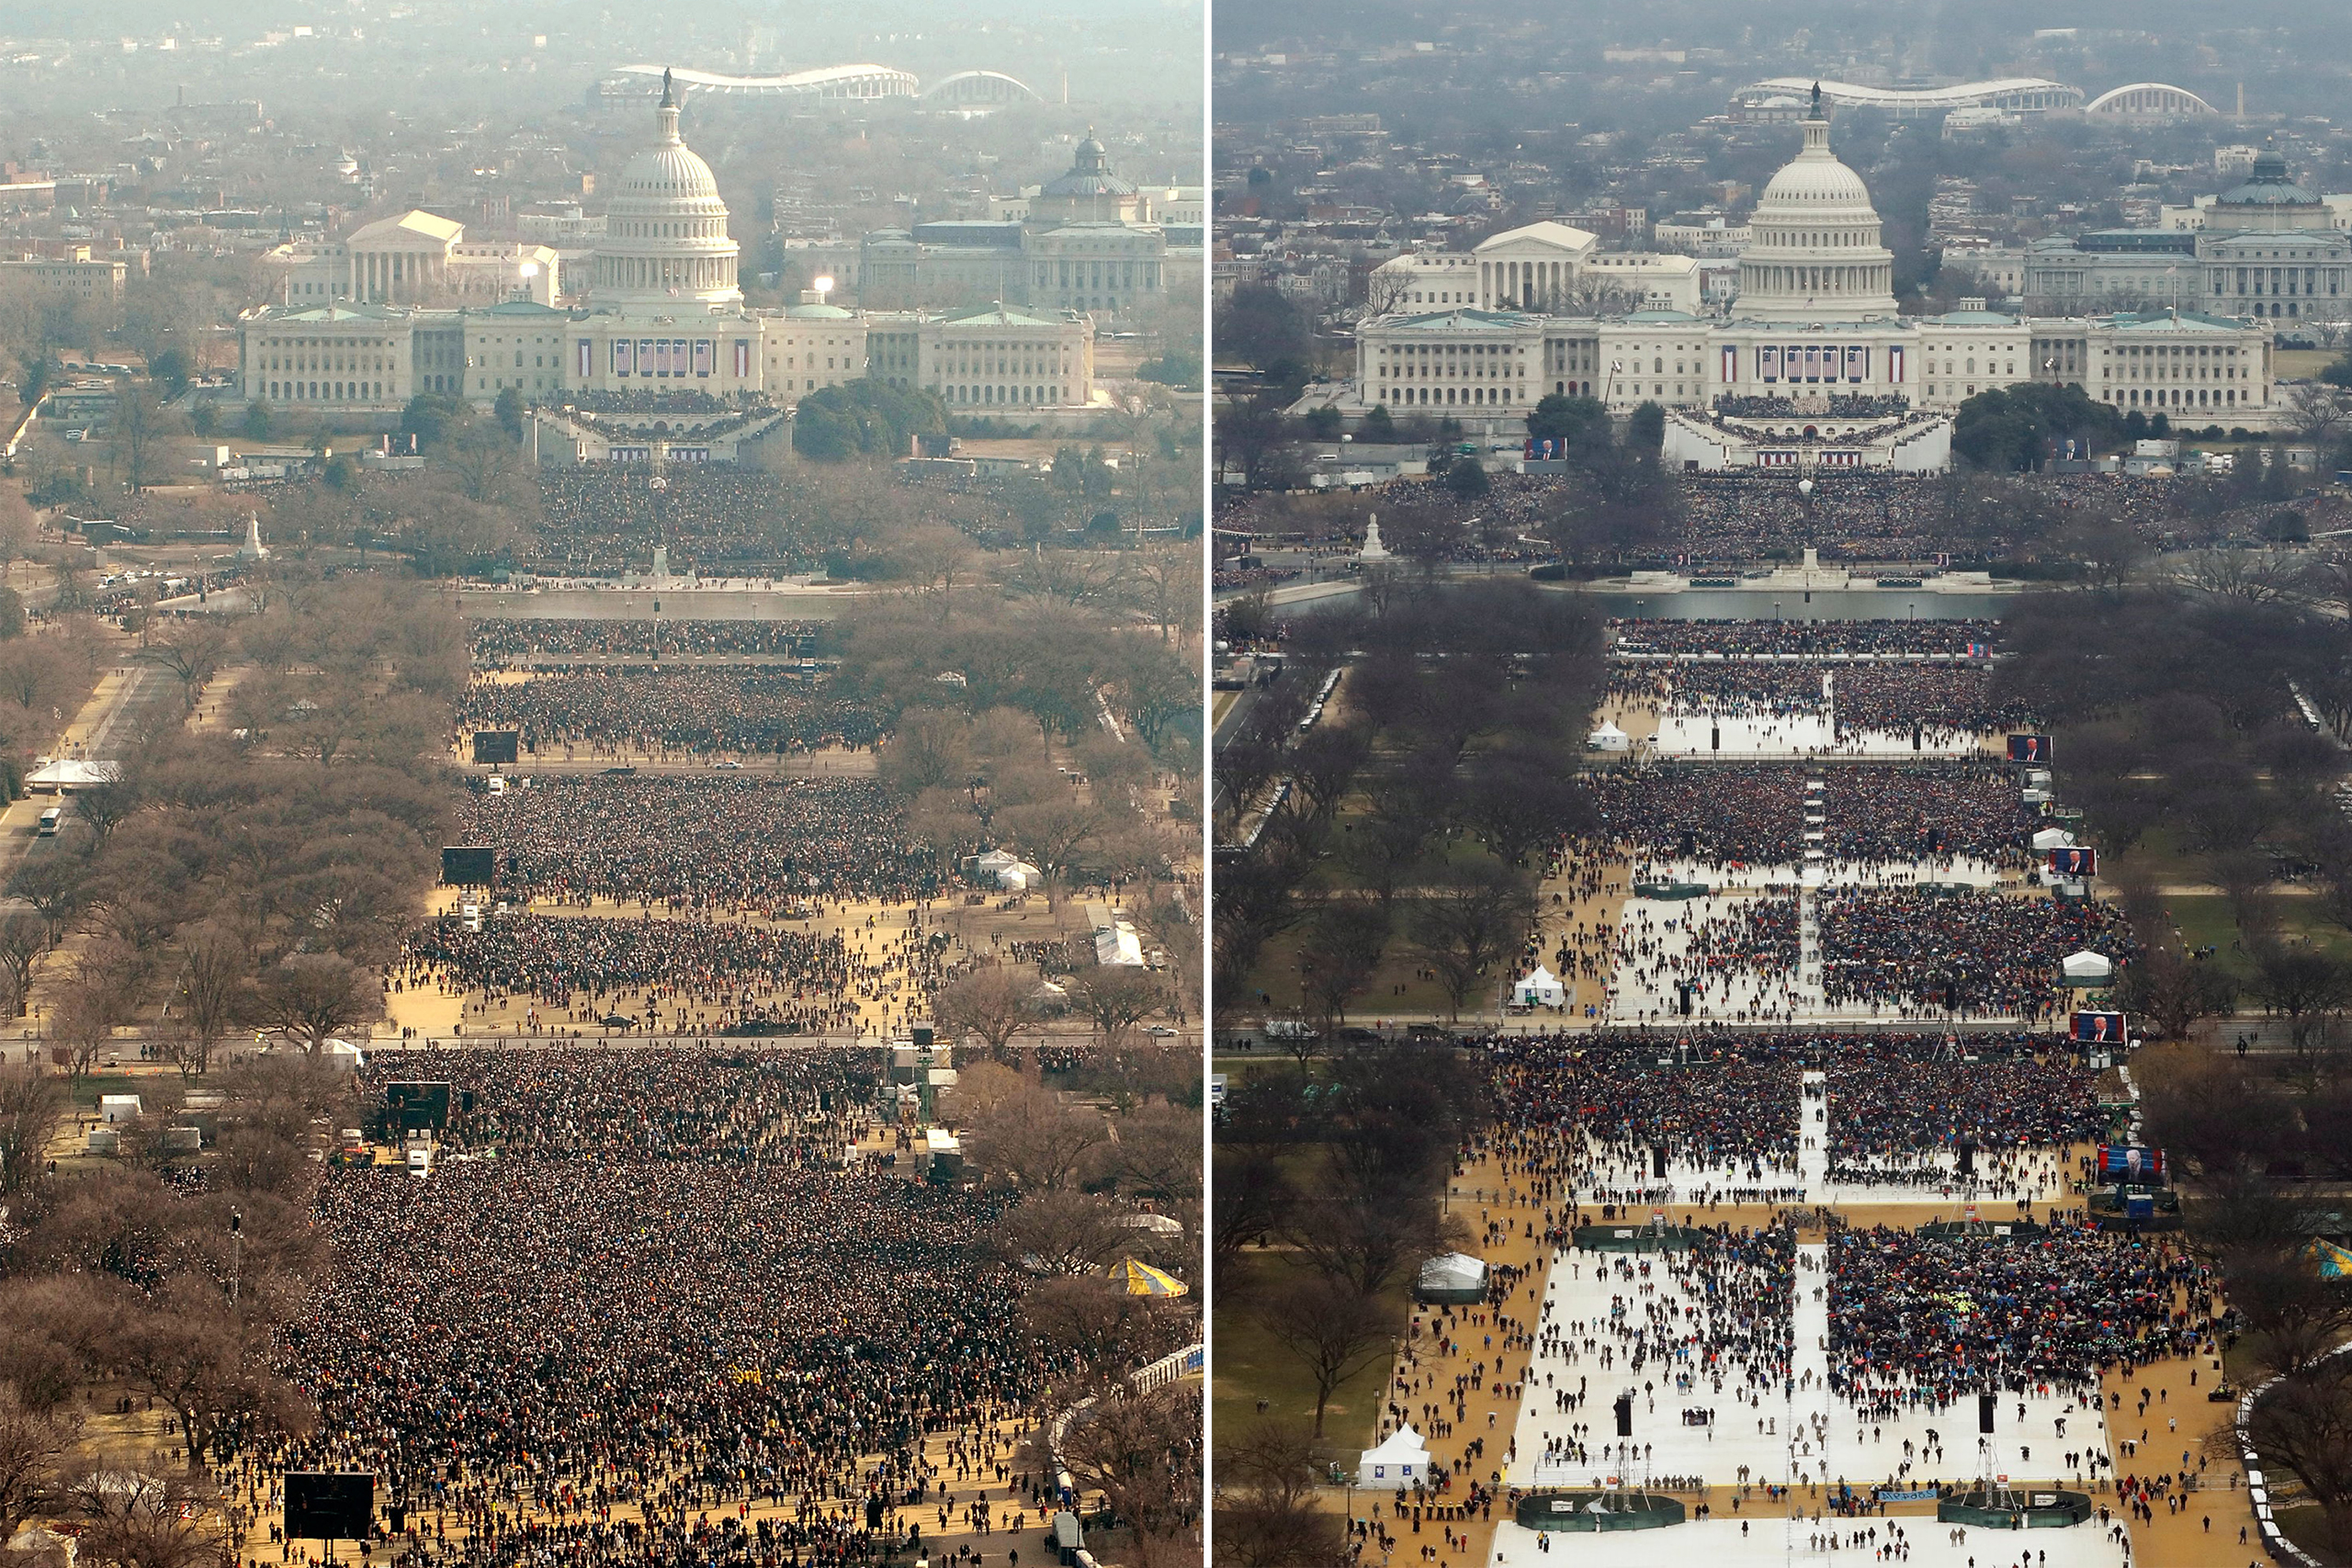 A composite image shows the inauguration crows for Barack Obama in 2009, left, and Donald Trump in 2017.